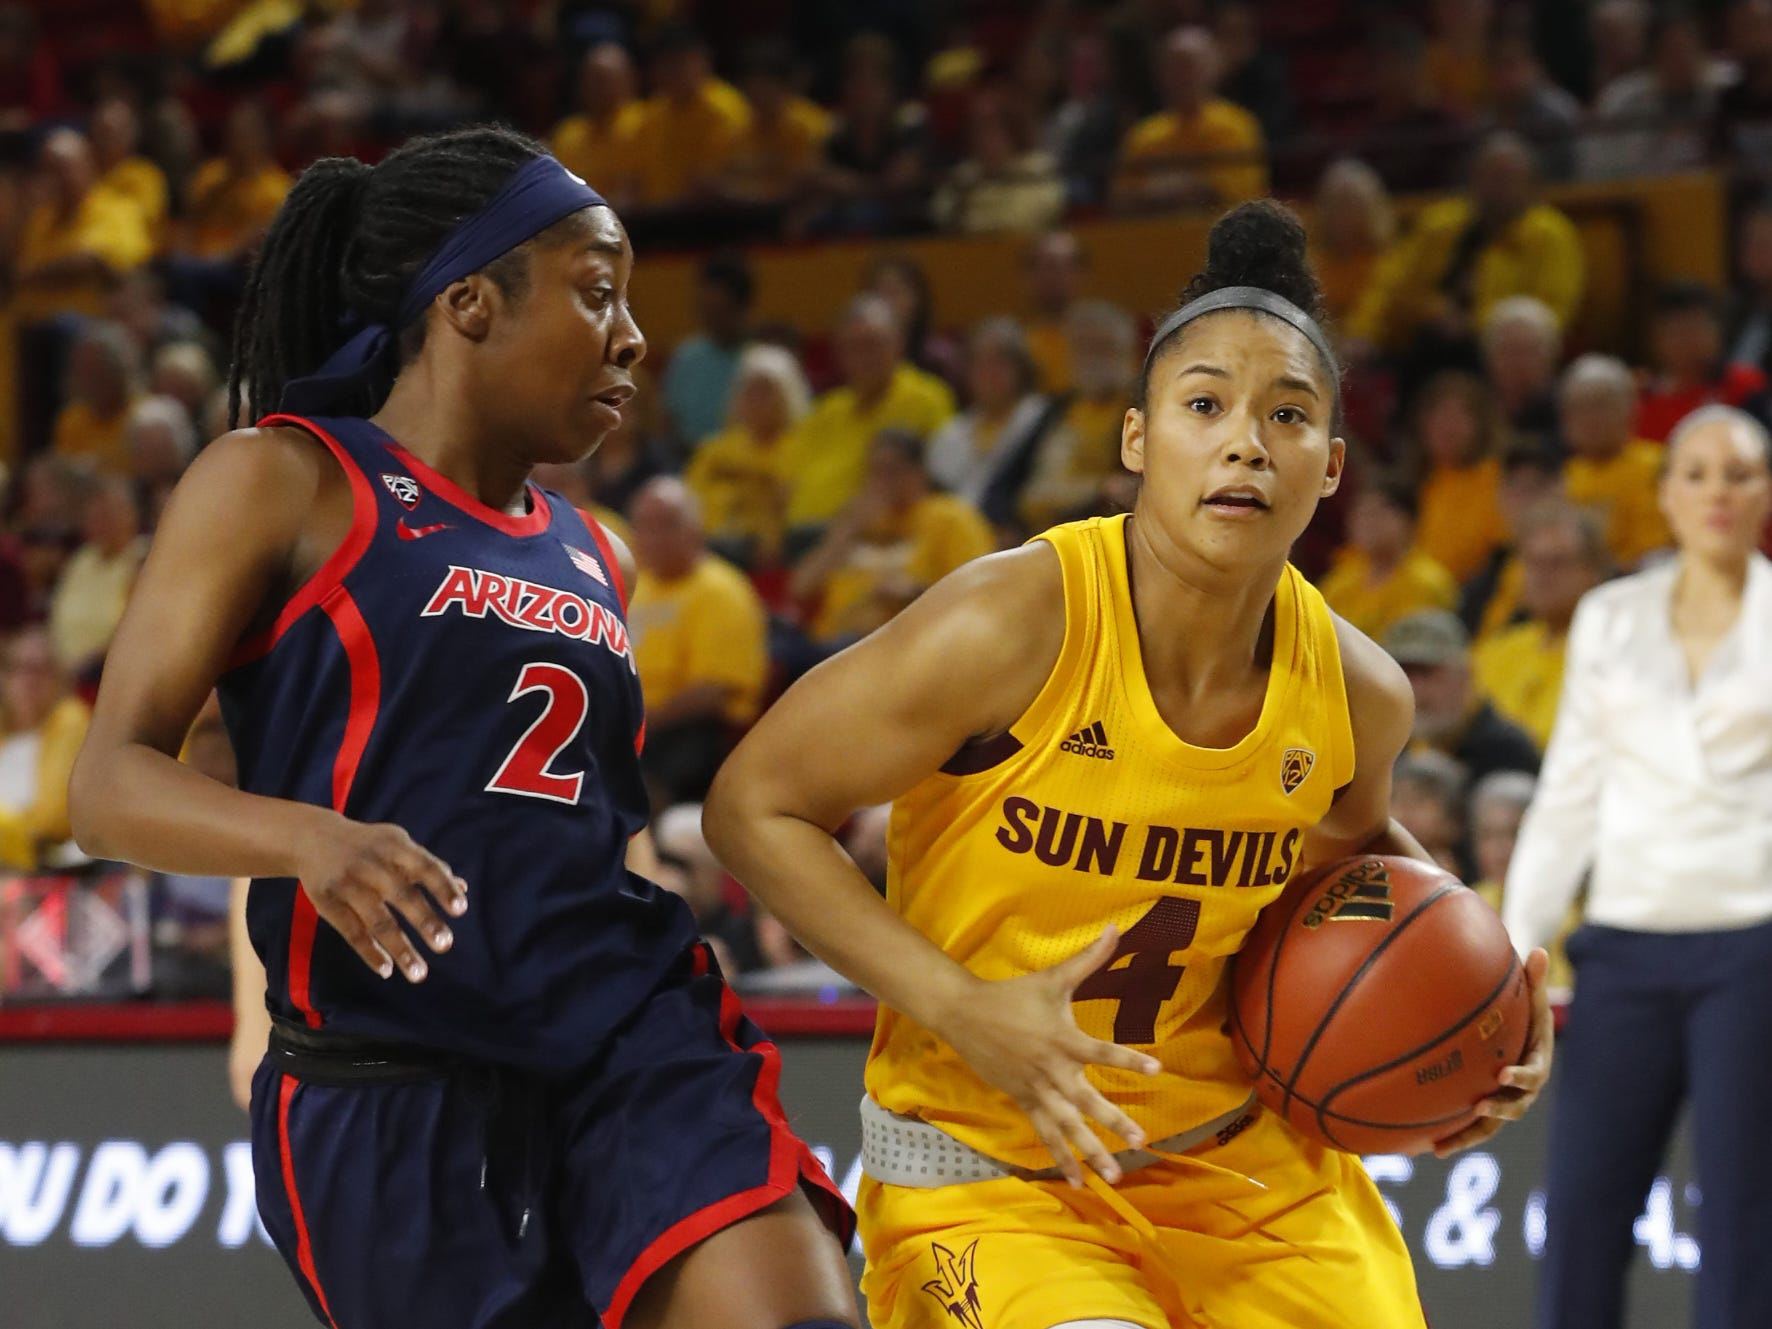 ASU's Kiara Russell (4) drives against Arizona's Aari McDonald (2) during the first half at Wells Fargo Arena in Tempe, Ariz. on February 1, 2019.